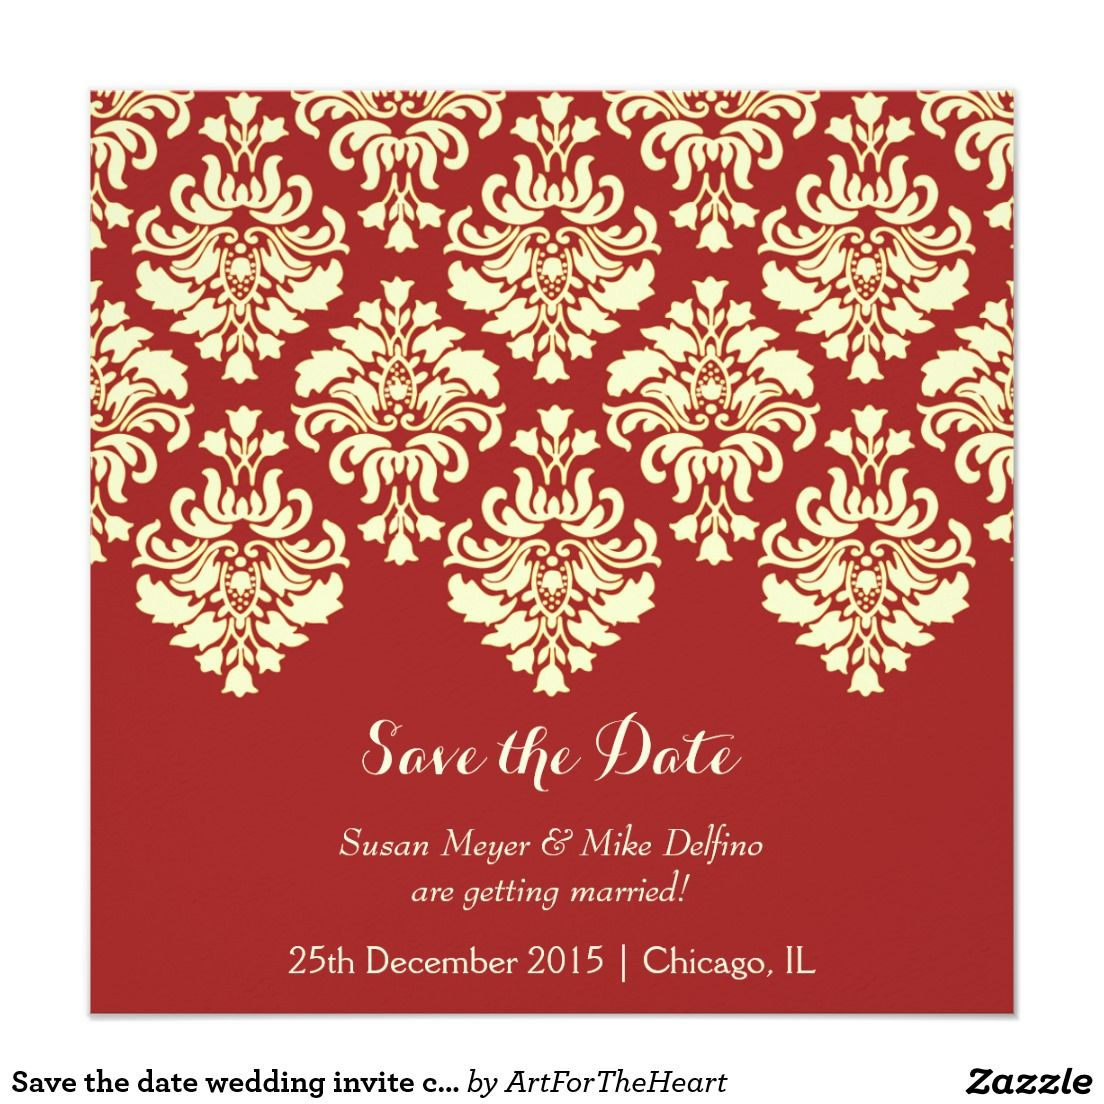 Save the date wedding invite card red damask | Damasks, Wedding and ...